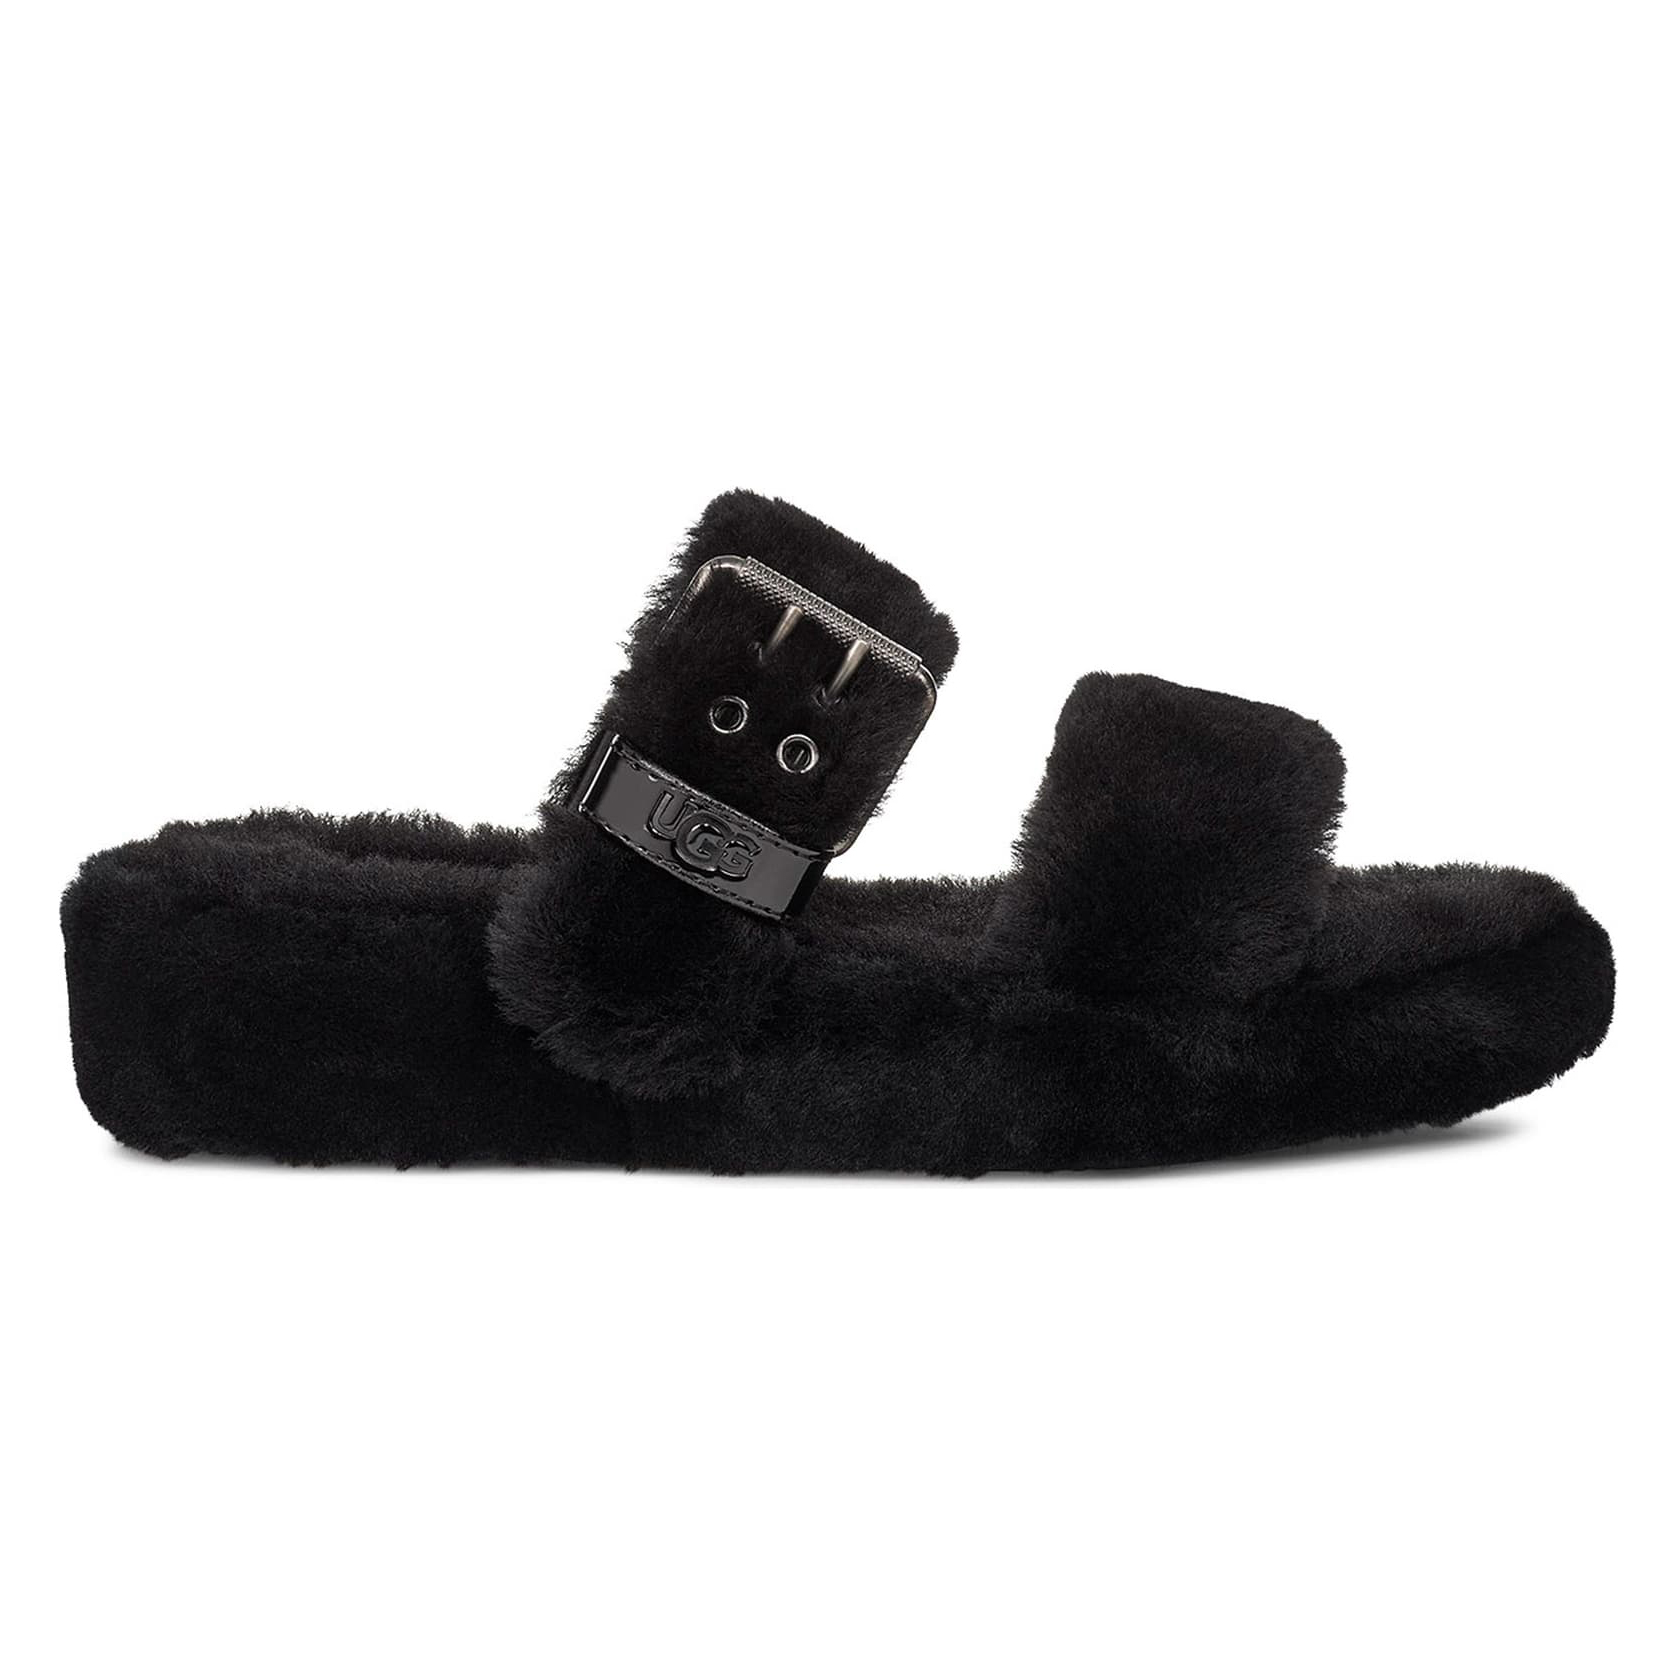 These Comfy Slippers Have Been Photographed by Paparazzi Hundreds of Times — and They're on Sale Now